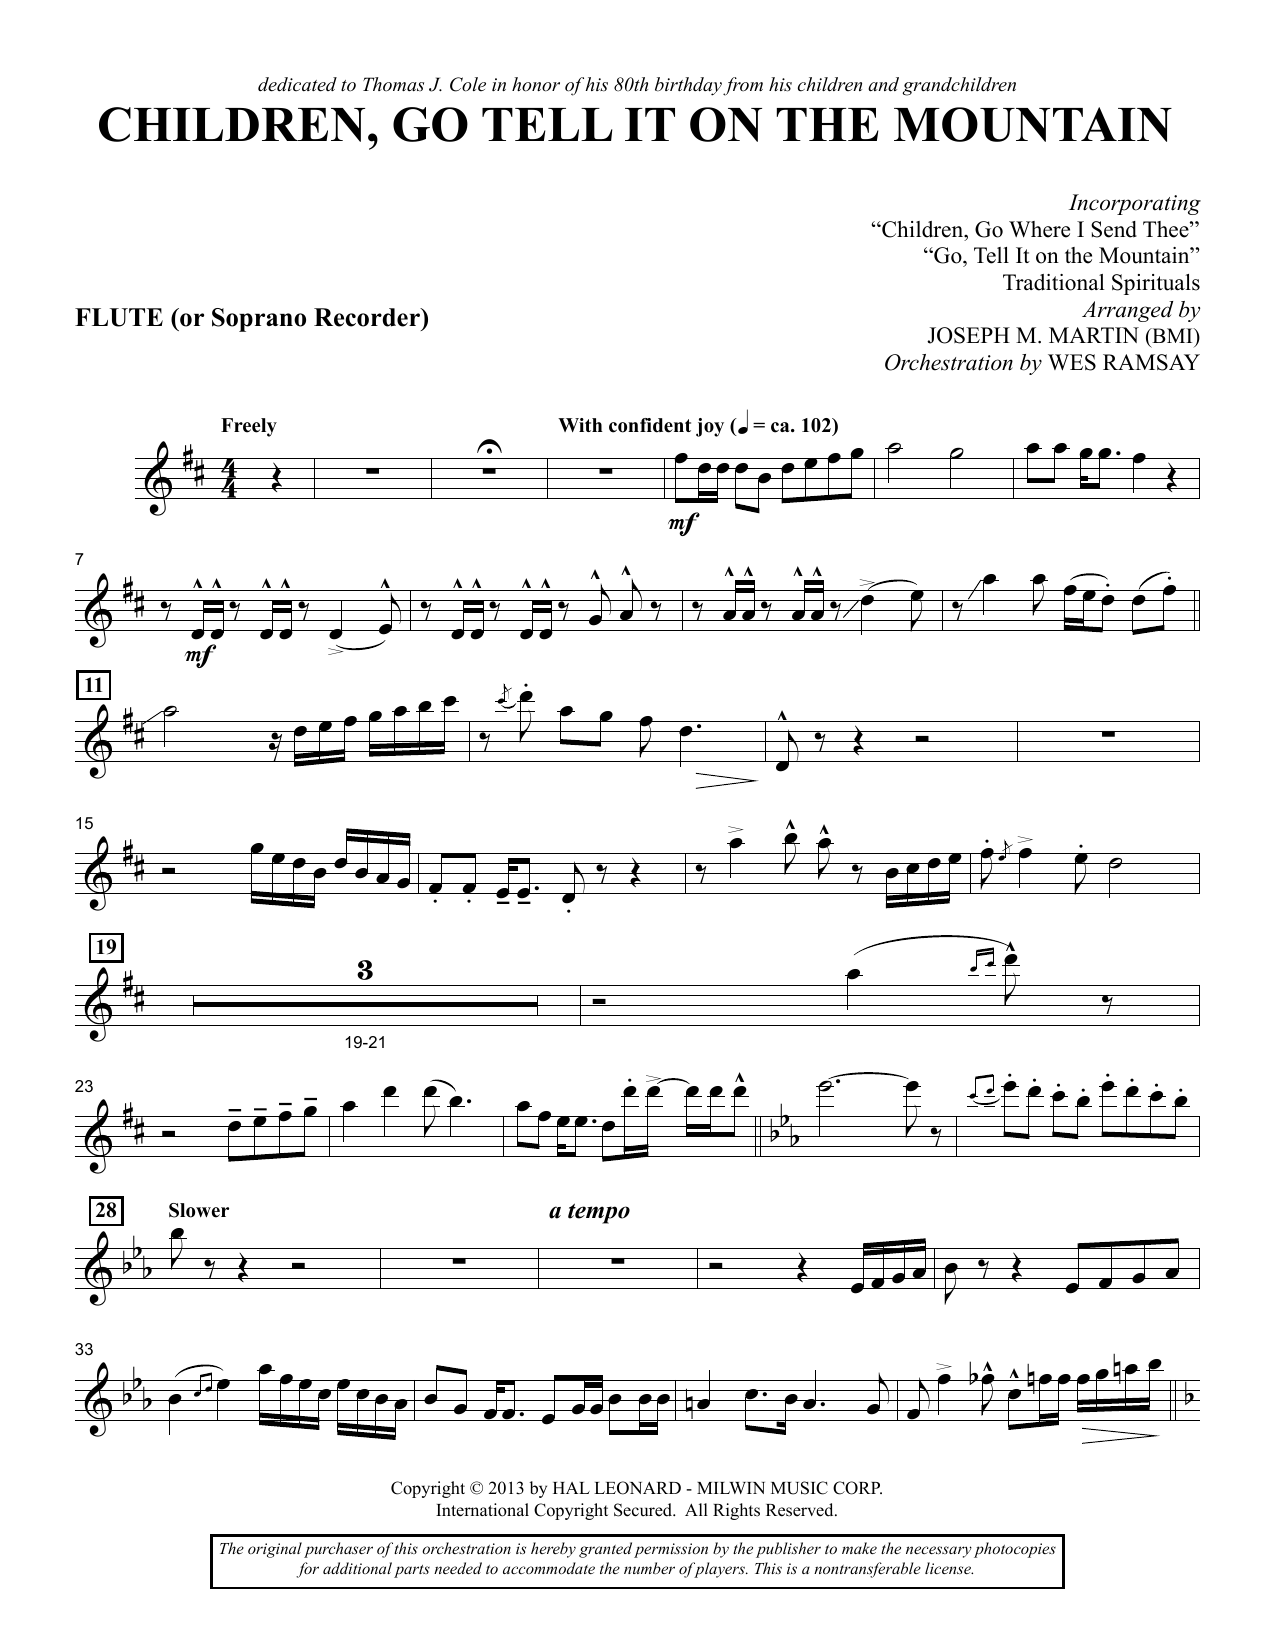 Joseph M. Martin Children, Go Tell It on the Mountain - Flute/Soprano Recorder sheet music notes and chords. Download Printable PDF.